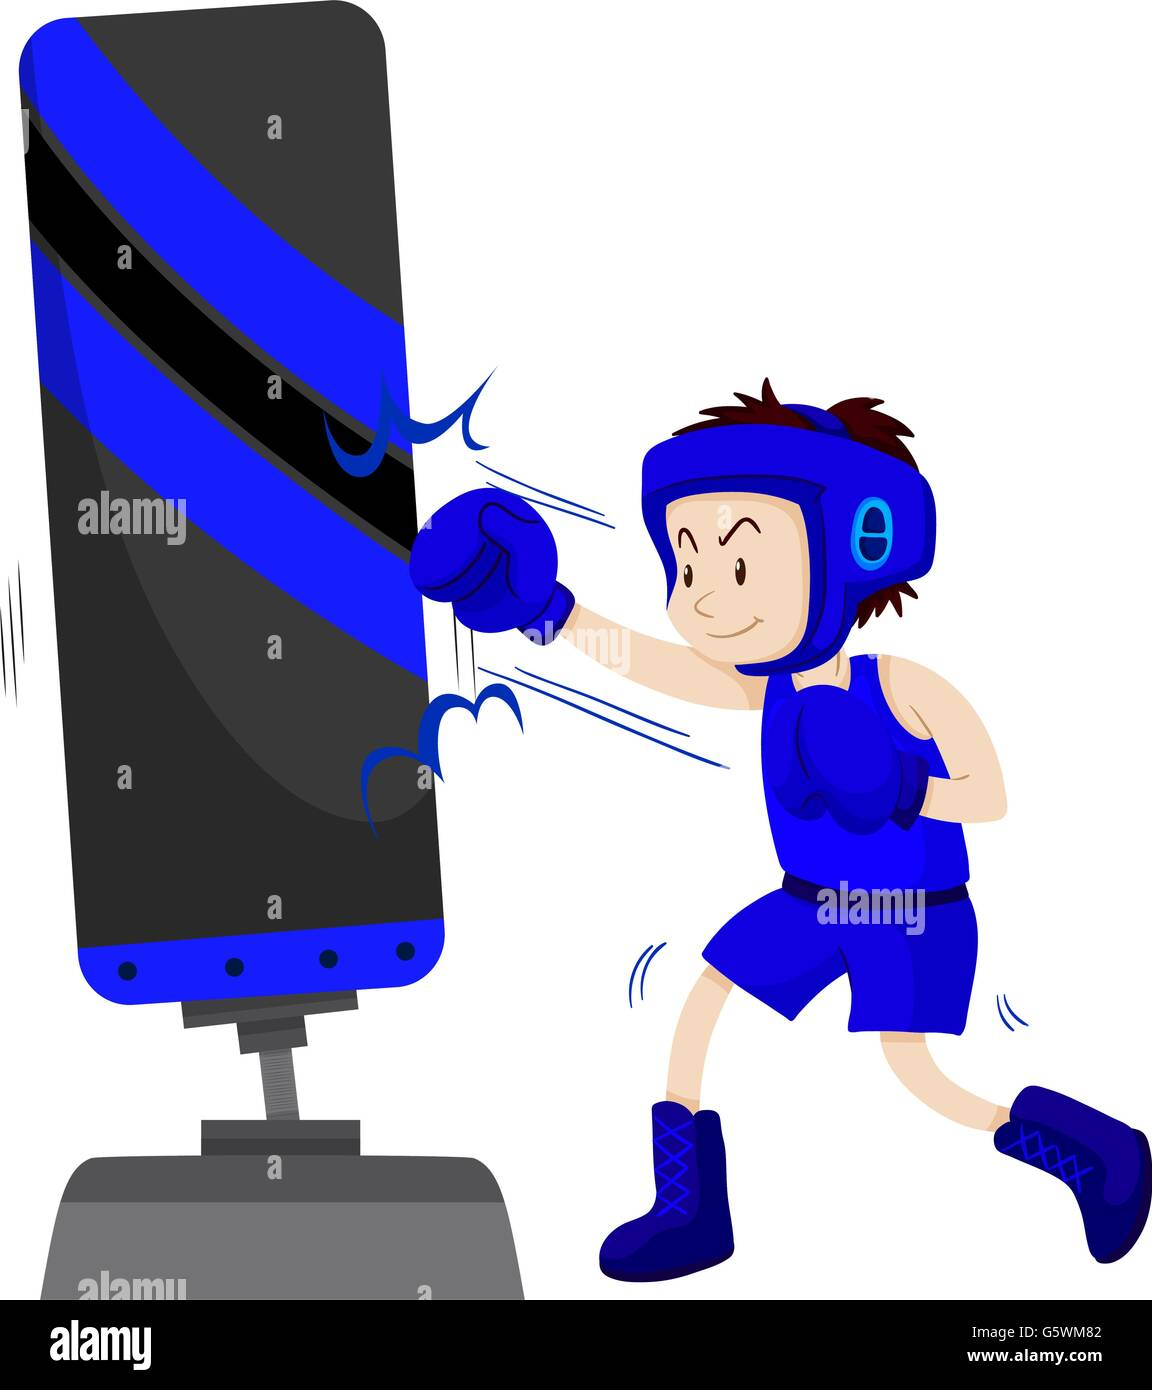 Boxer in blue outfit punching on punching stand illustration - Stock Vector